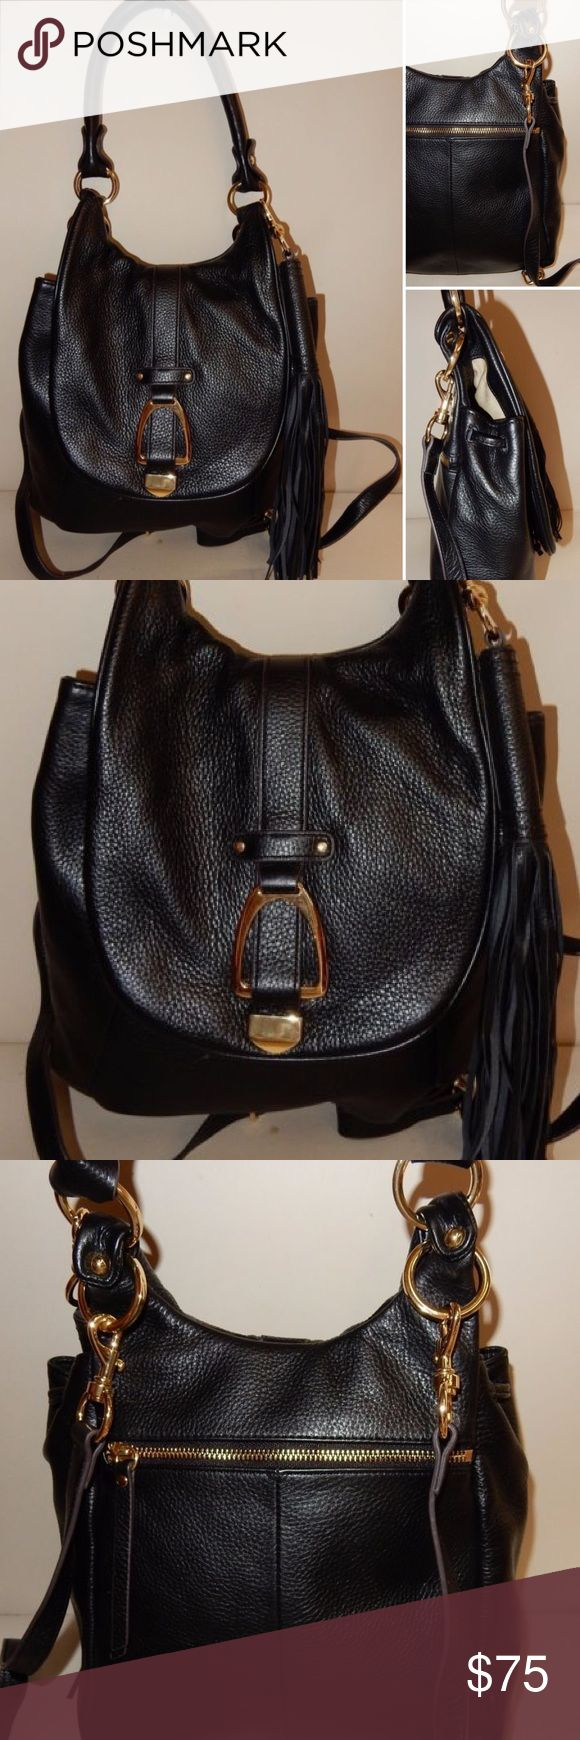 G.I.L.I Leather Convertible Backpack in Black Great condition likes new, no defect. Grainy soft leather. My fav backpack which can be converted to a shoulder bag. Clean and ready to ship! G.I.L.I. Bags Backpacks